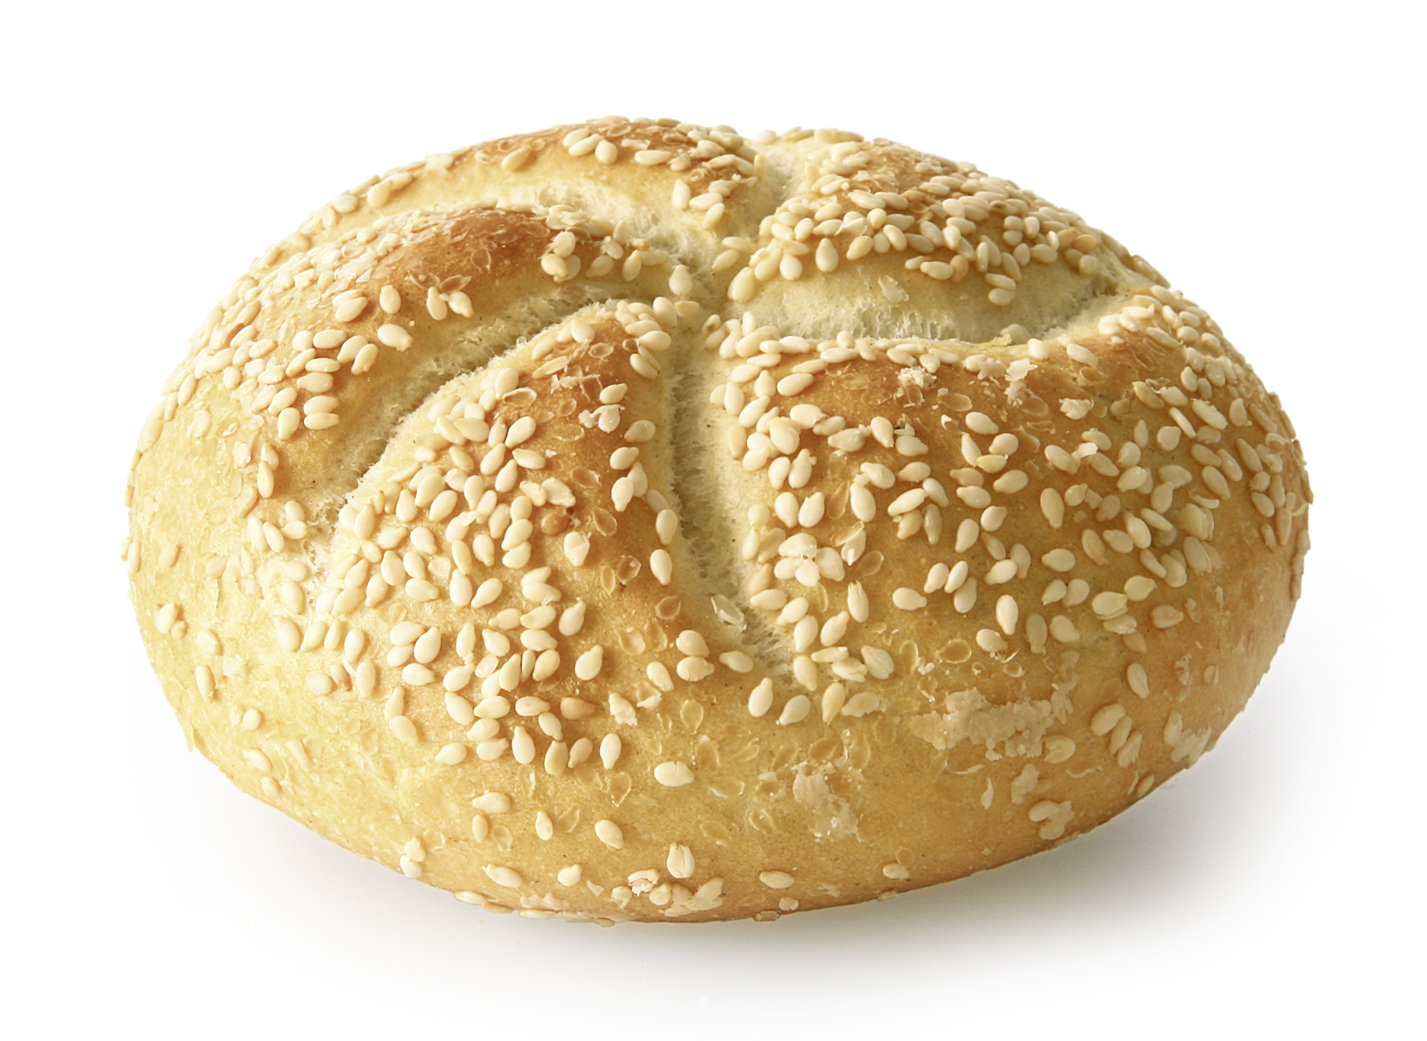 Kaiser Roll Sesame Seeds - Wheat roll round/ with typical look and sprinkled with 2.9% sesame